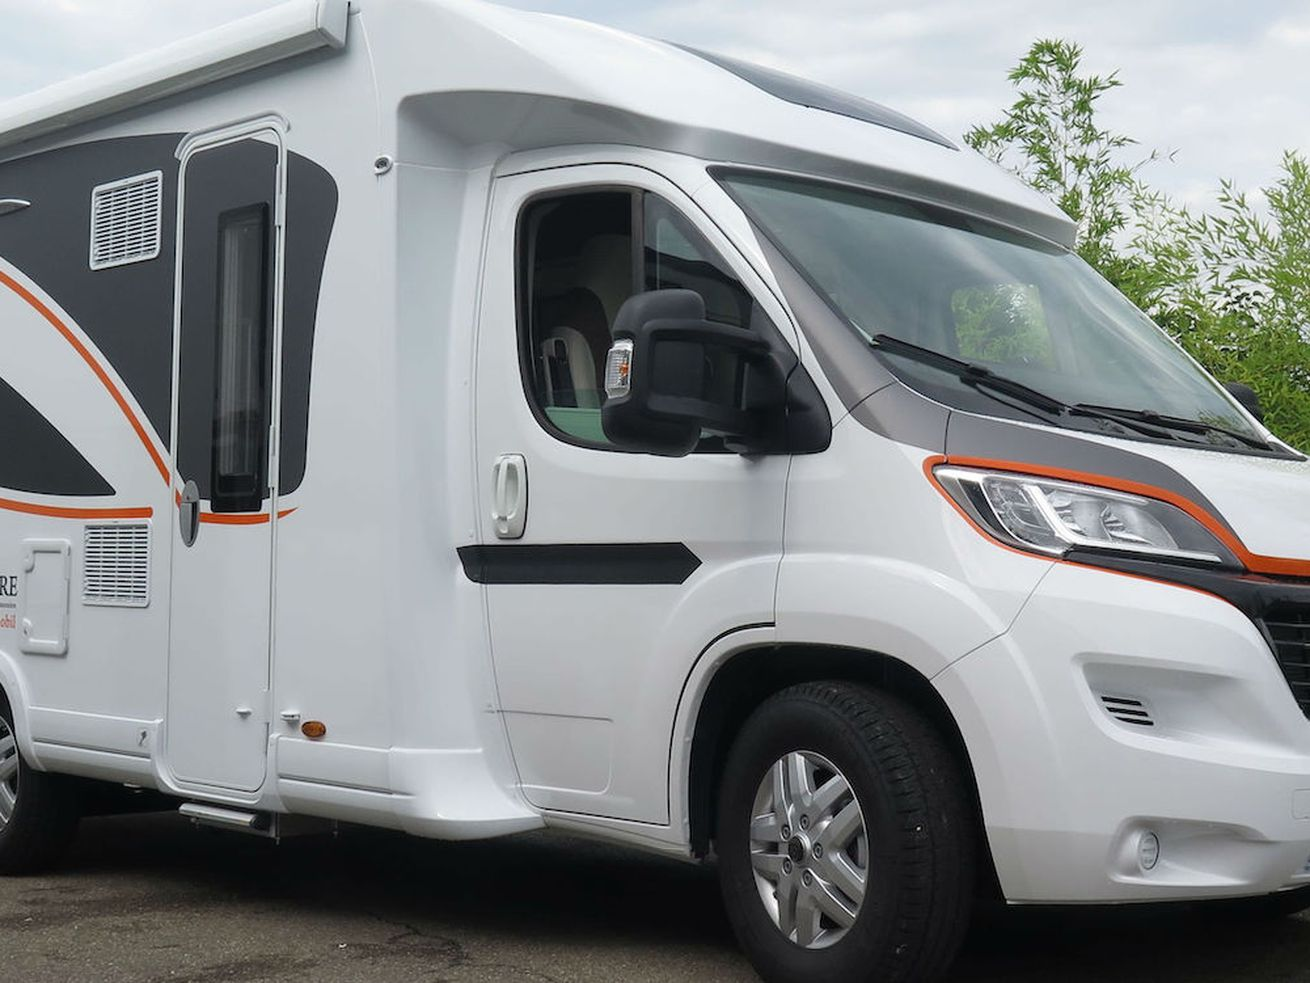 World?s first fully electric RV can now go 249 miles on one charge